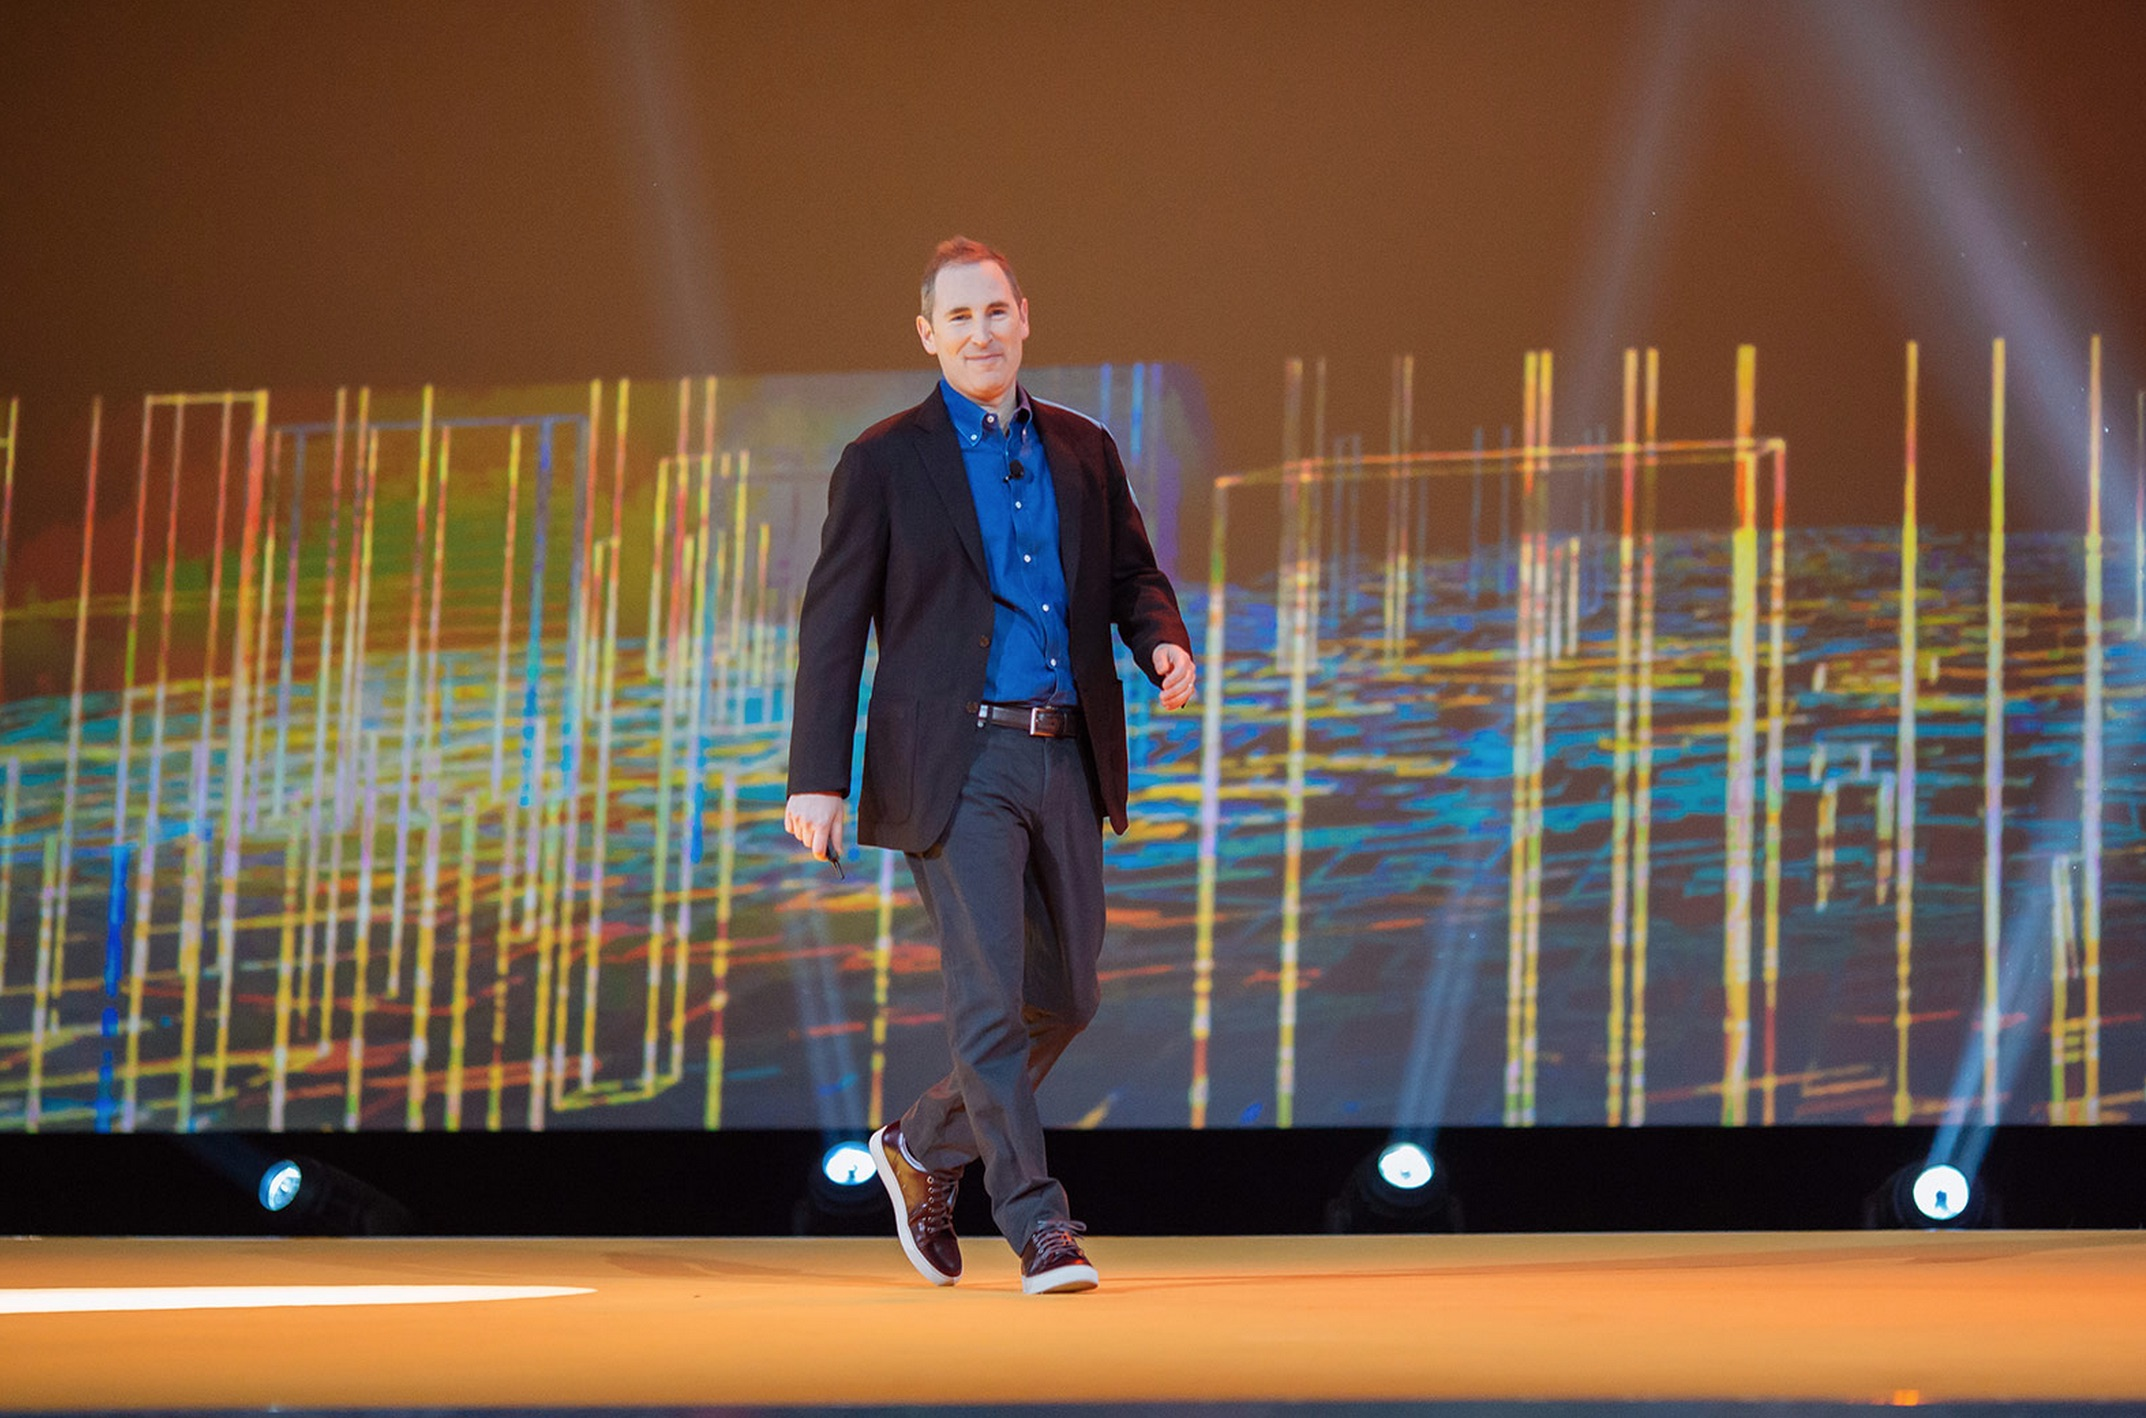 Andy Jassy, AWS CEO